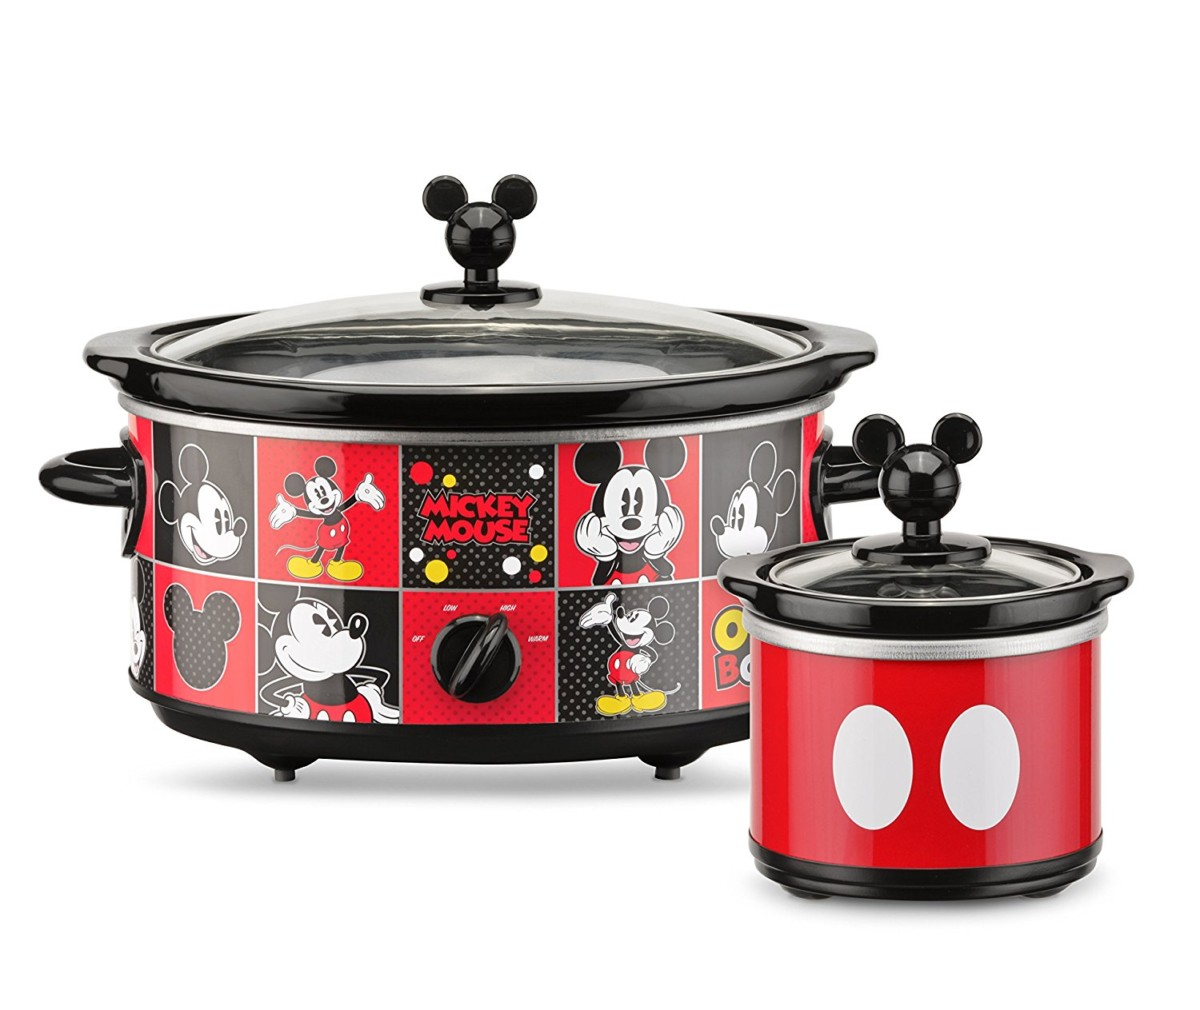 Mickey Mouse 5 quart Oval Slow Cooker with 20 oz Dipper 2